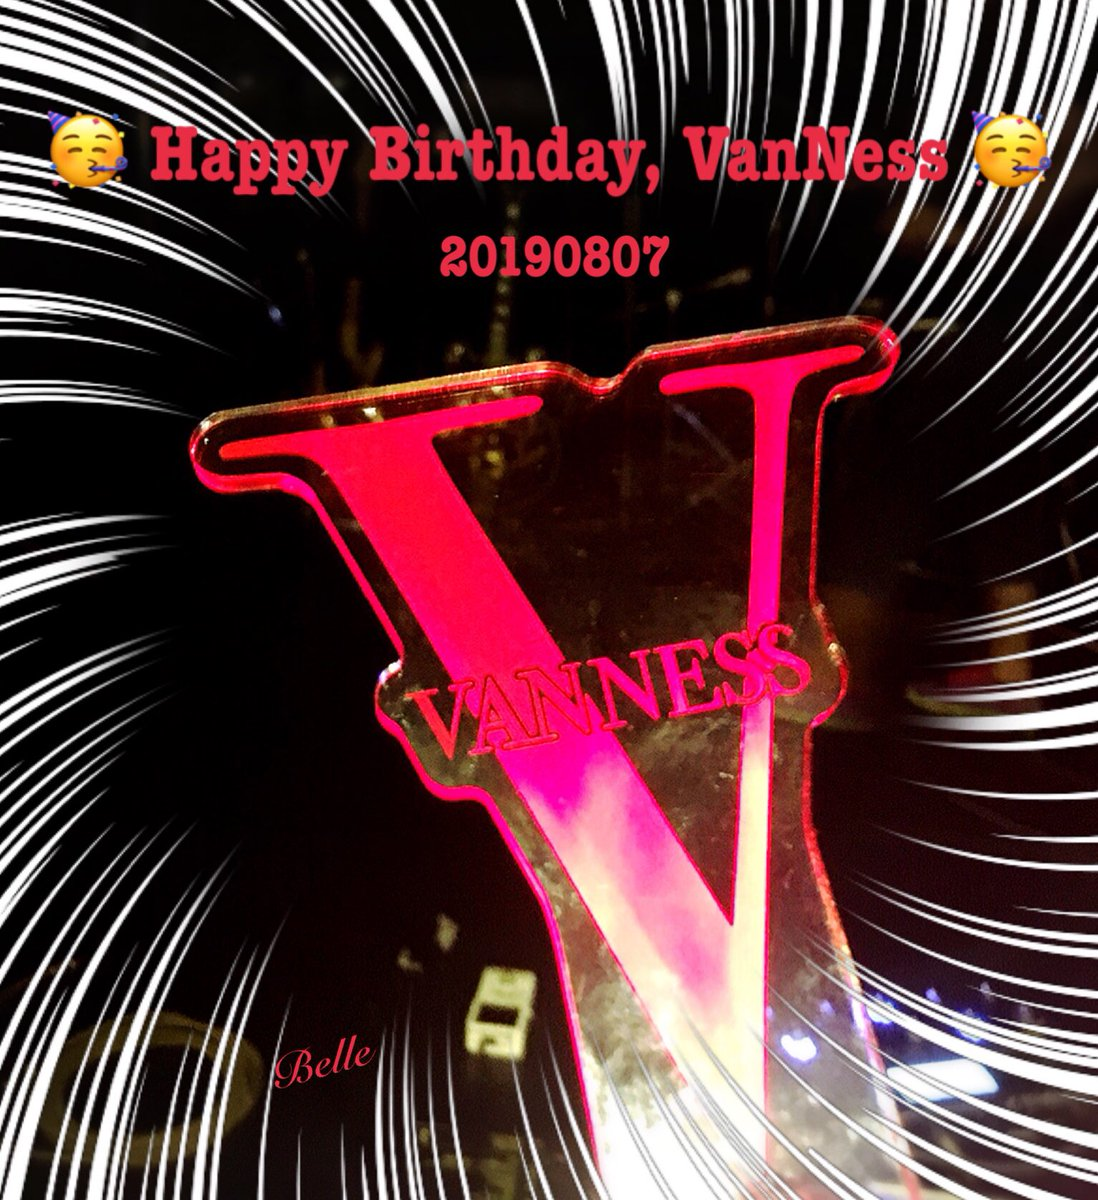 vannesswu… tagged Tweets and Downloader | Twipu